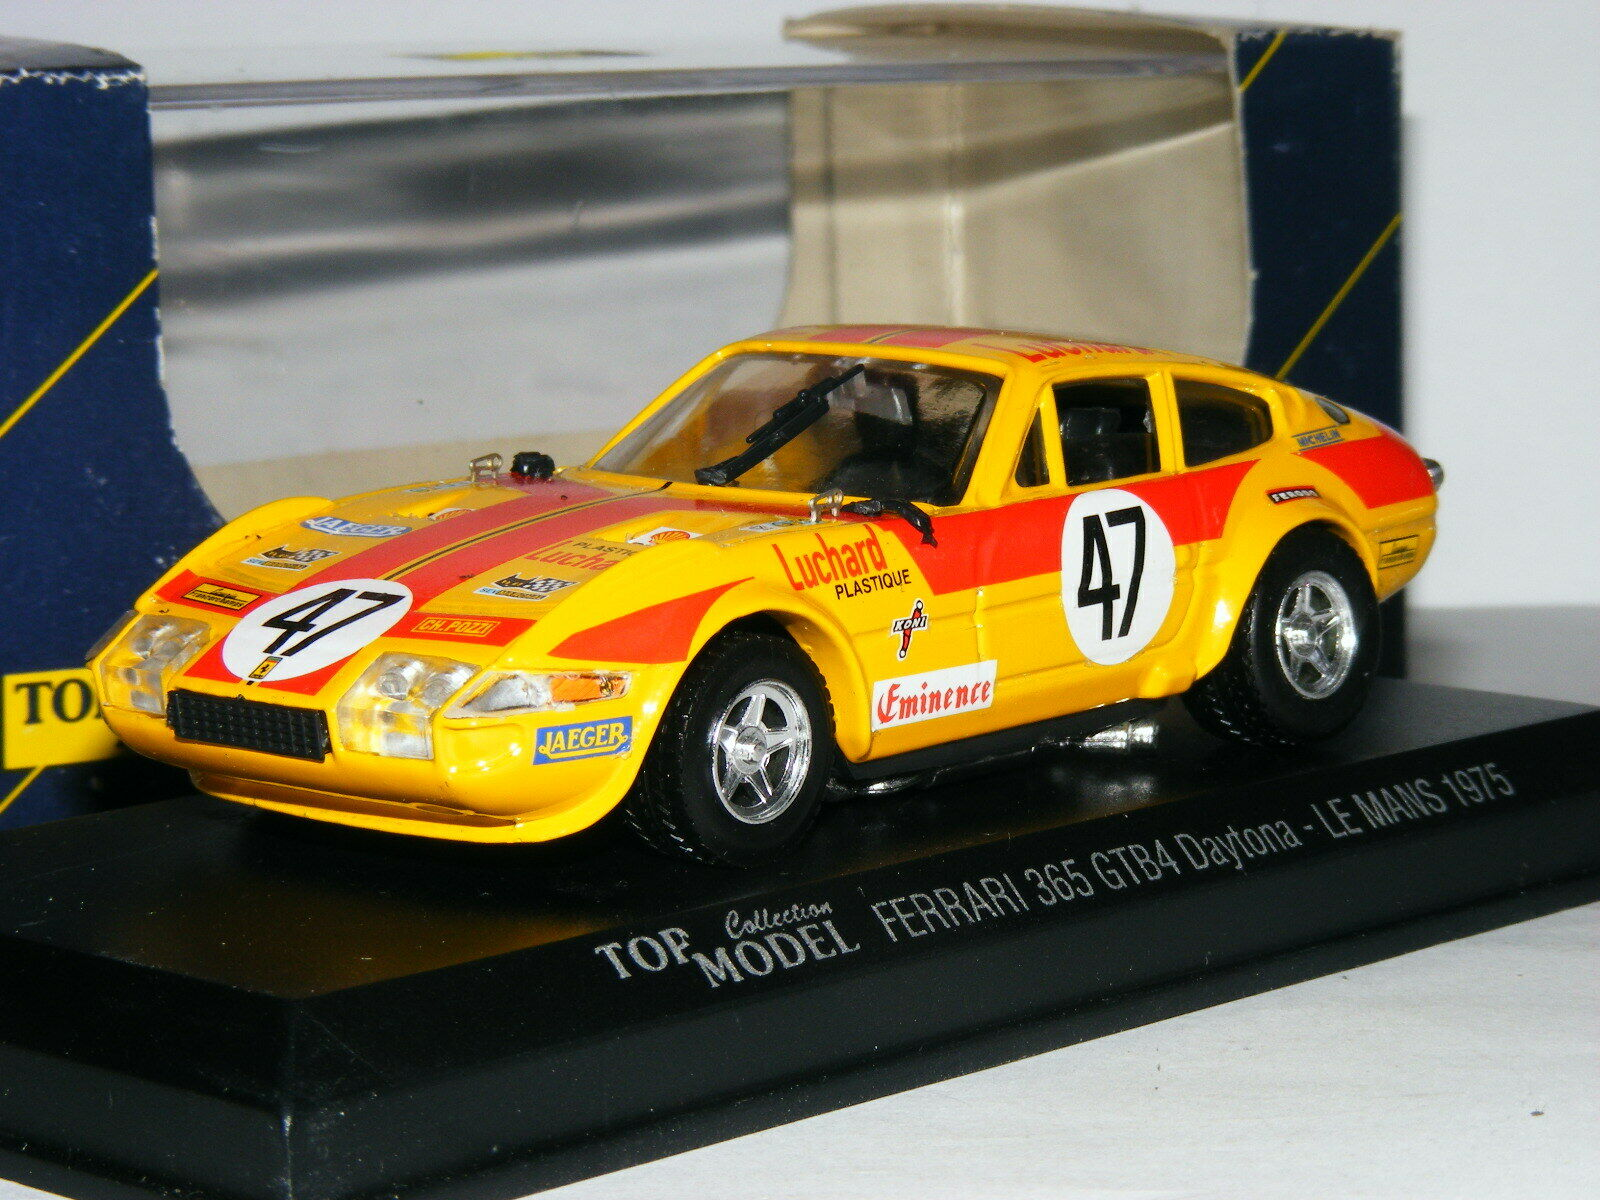 Top Model TMC010 Ferrari 365 Daytona 1975 Le Mans  43